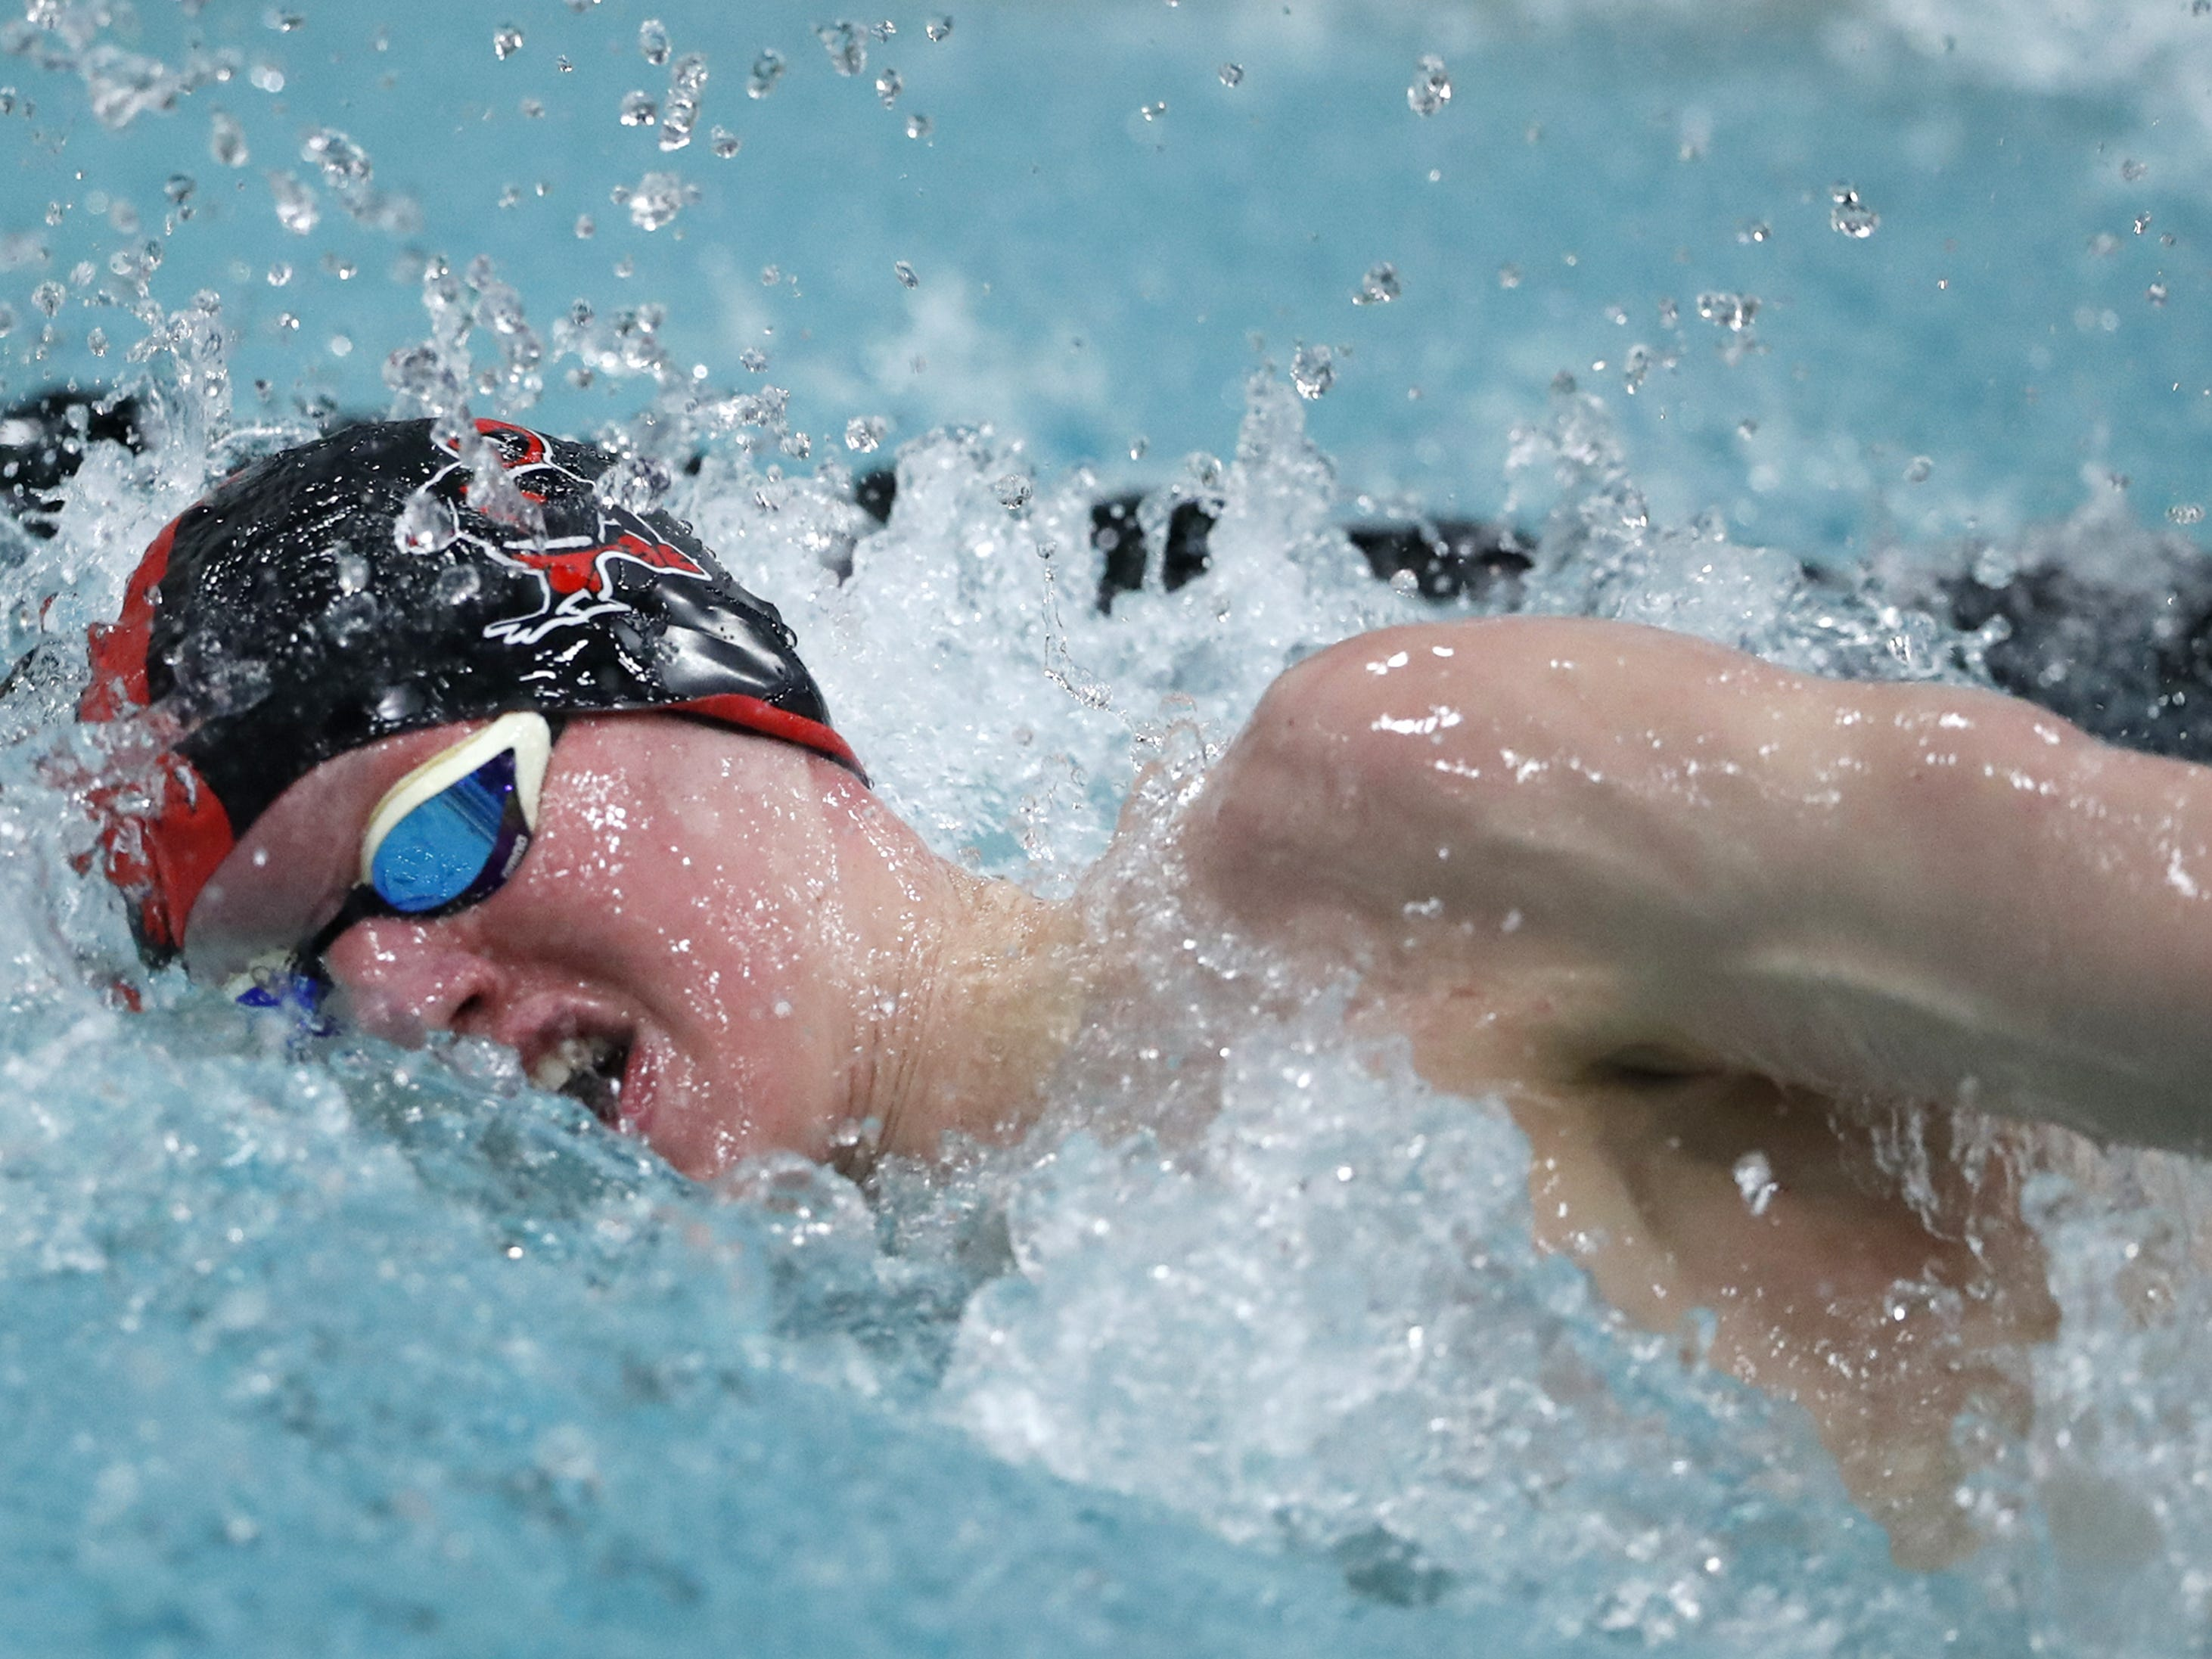 Waukesha South/Catholic MemorialÕs Caleb Blischke races in the 500 yard freestyle during the Division 1 2019 State Boys Swimming and Diving Championships Saturday, Feb. 16, 2019, at the UW Natatorium in Madison, Wis. Danny Damiani/USA TODAY NETWORK-Wisconsin